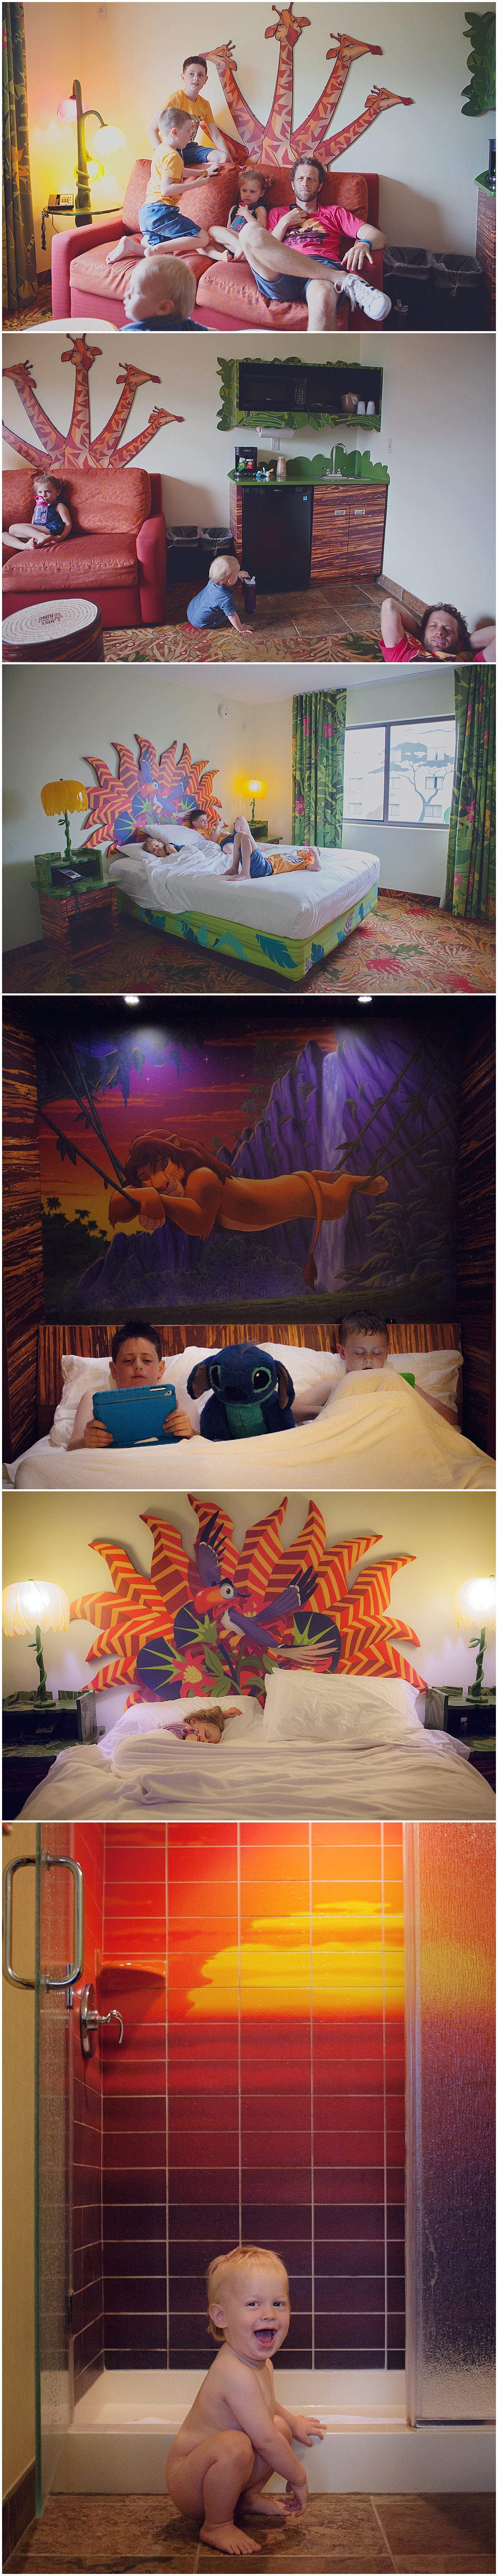 lion king suite art of animation resort disney world.jpg